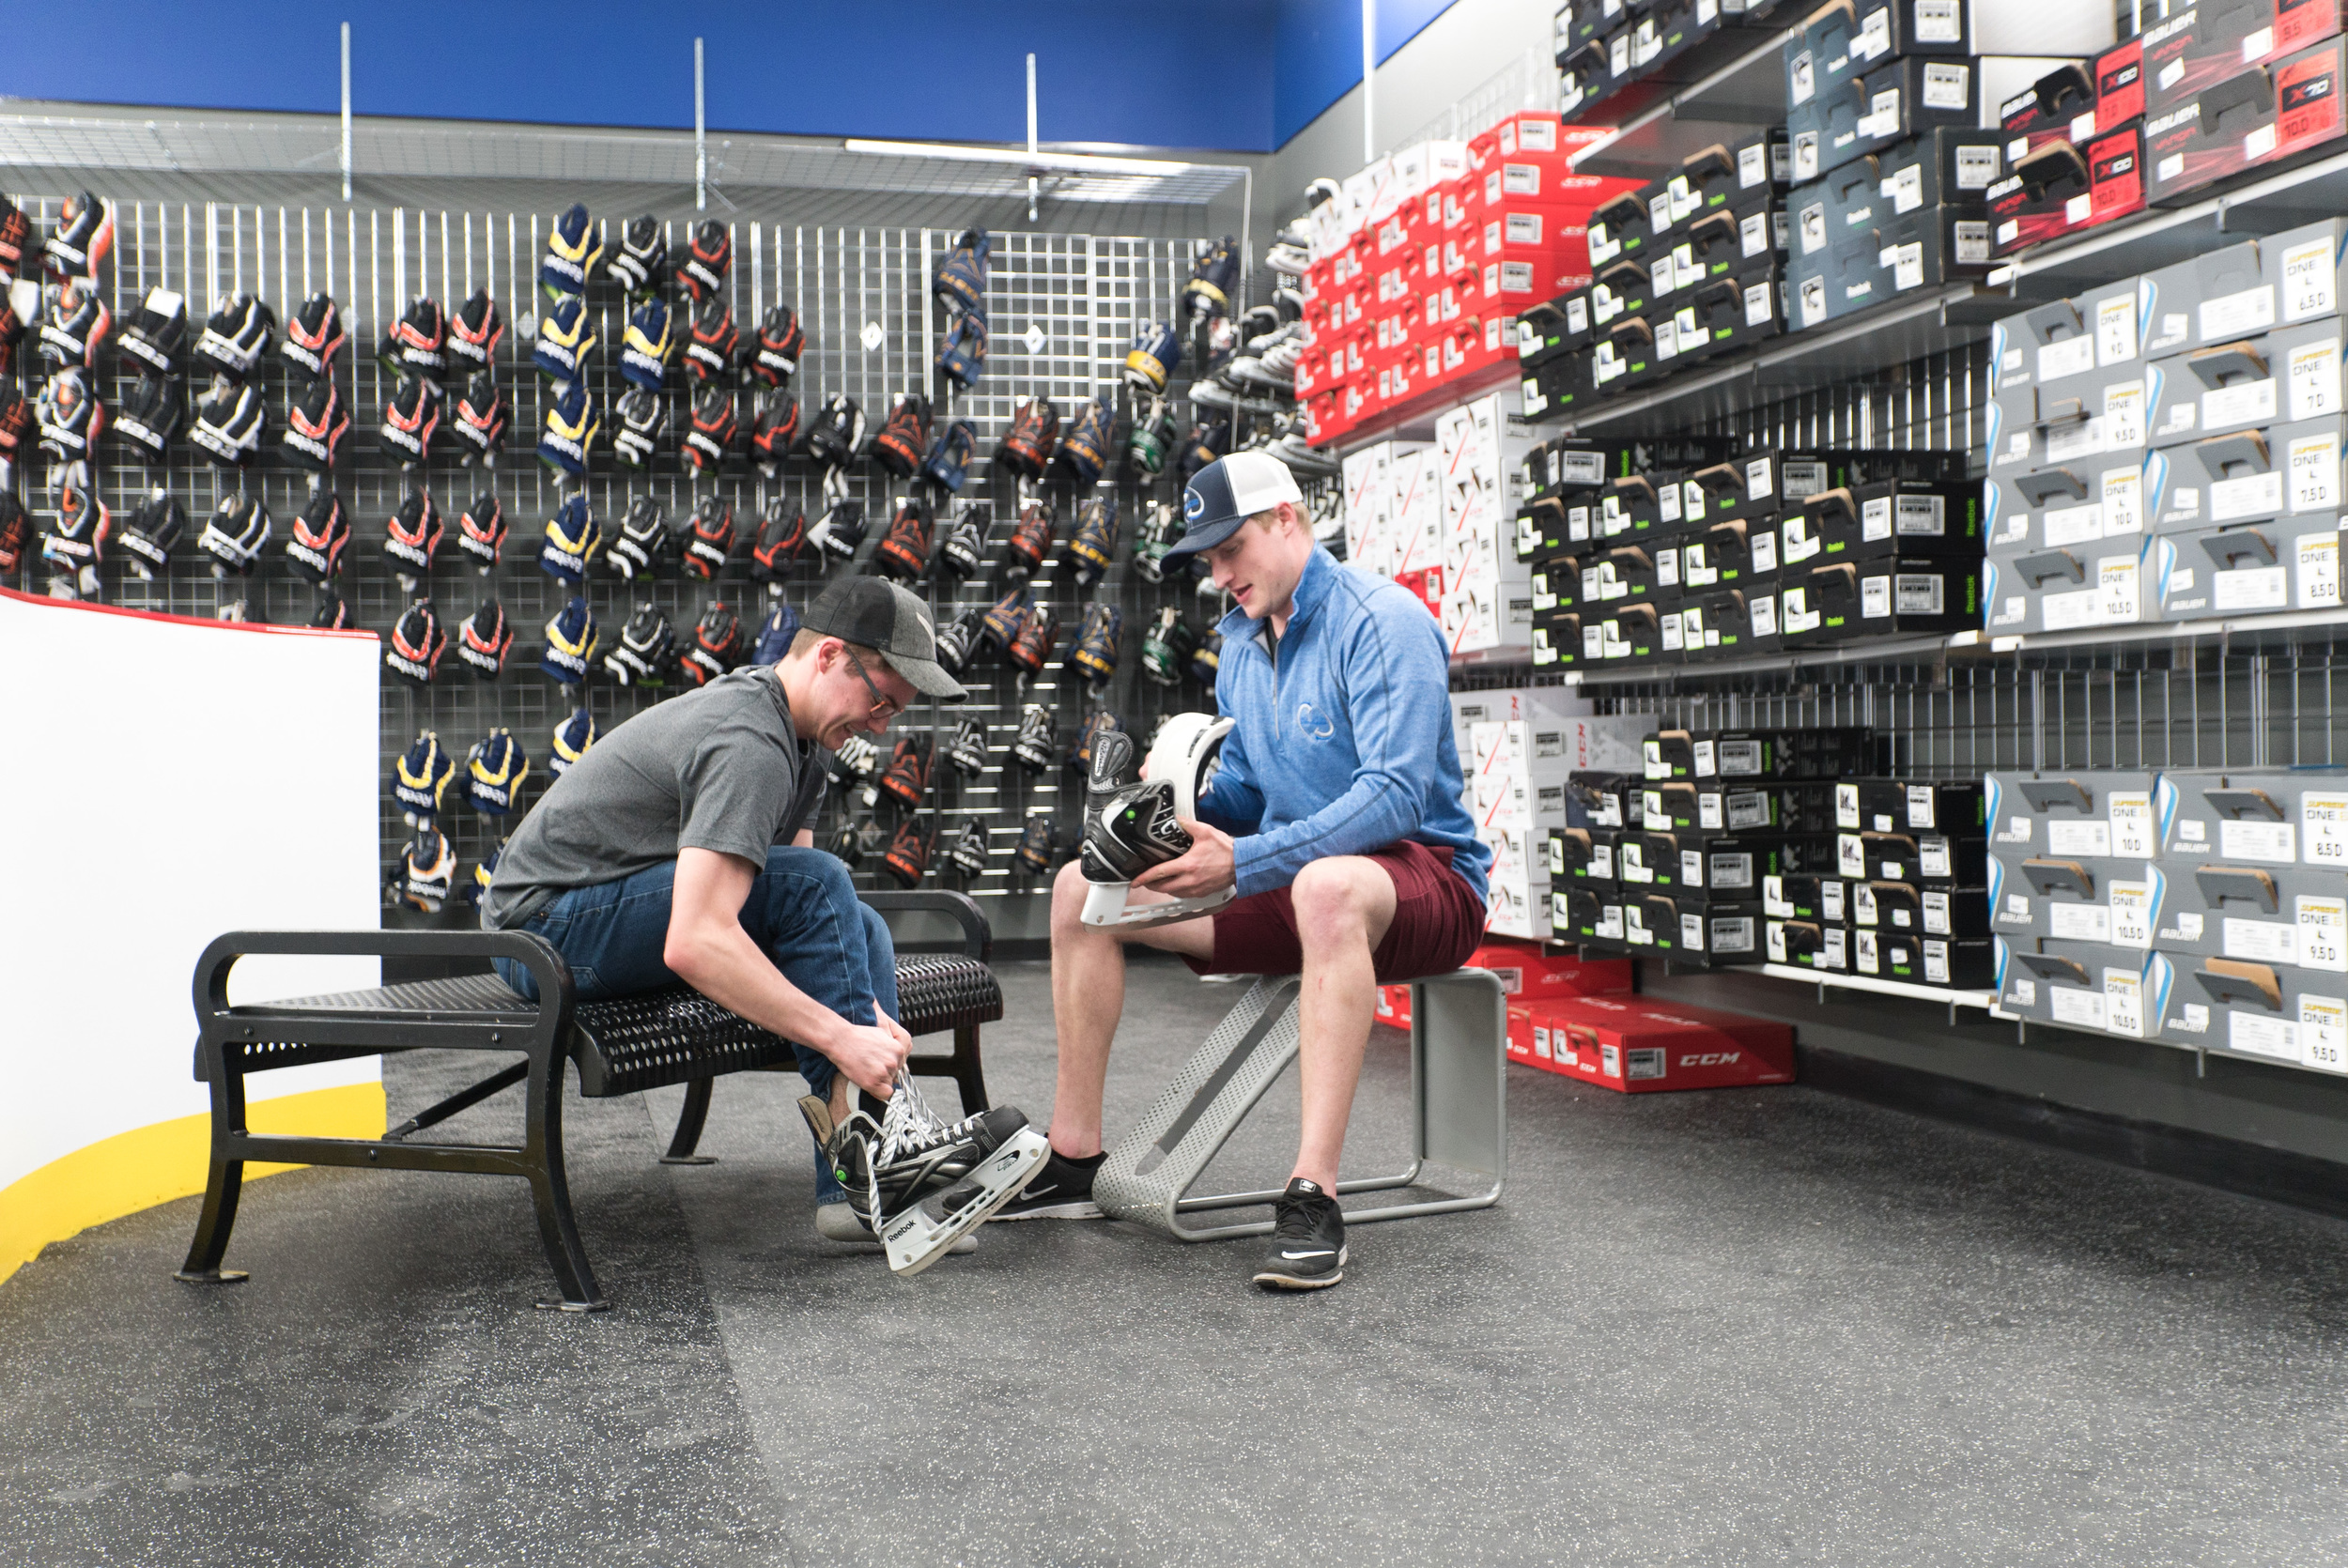 sporting-goods-vadnais-heights-hockey-skates-store.jpg